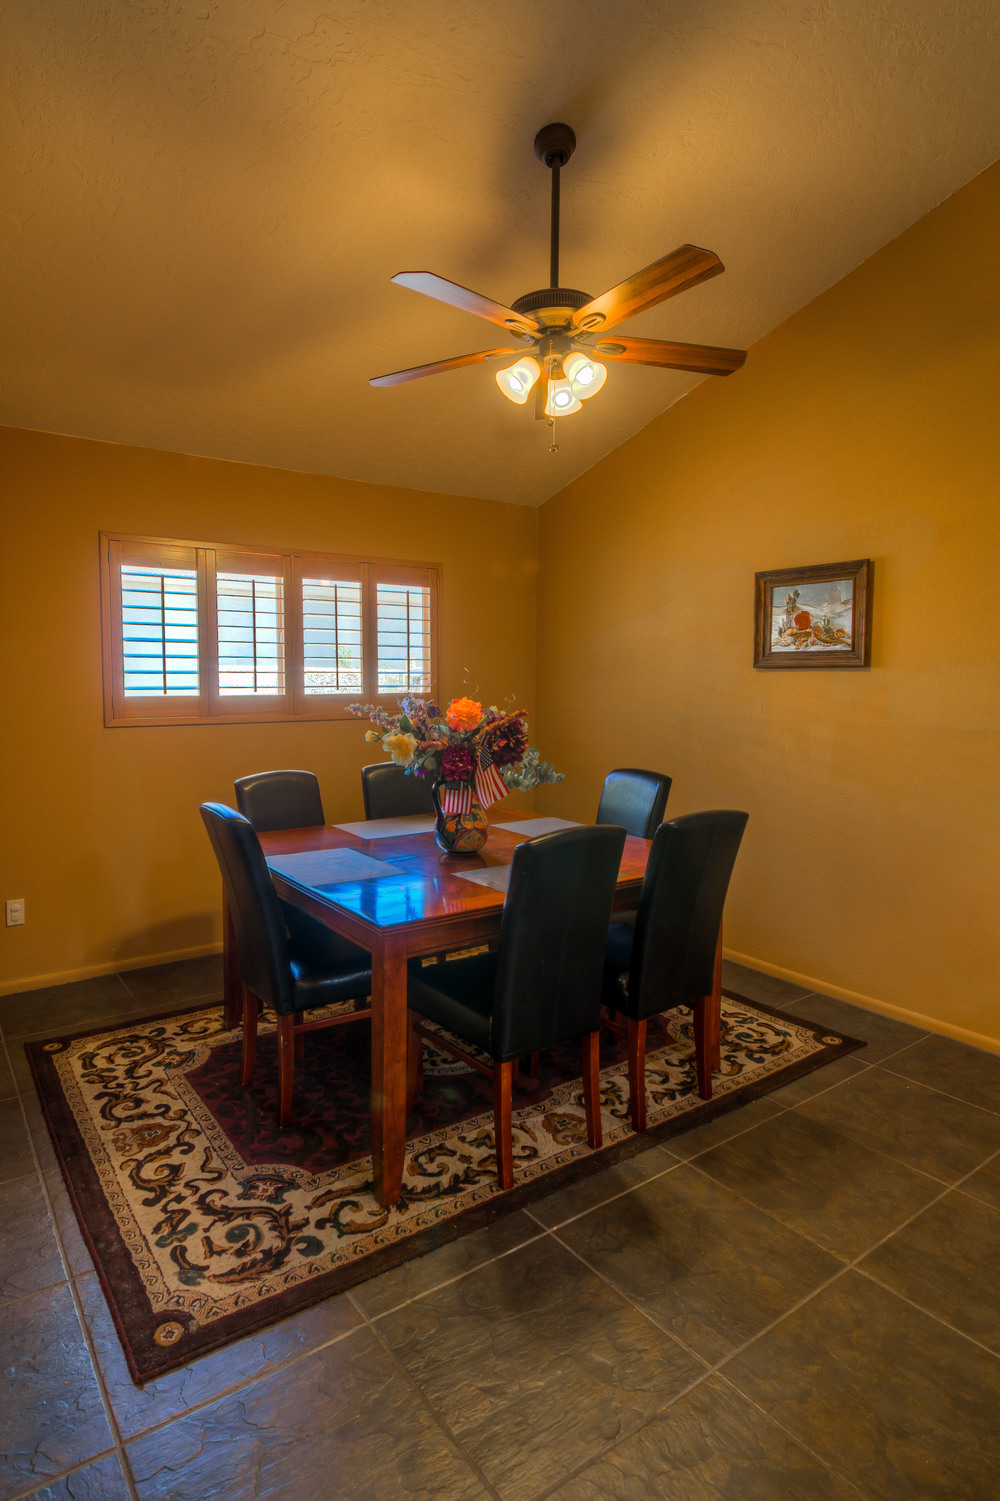 12 Dining Room photo a.jpg